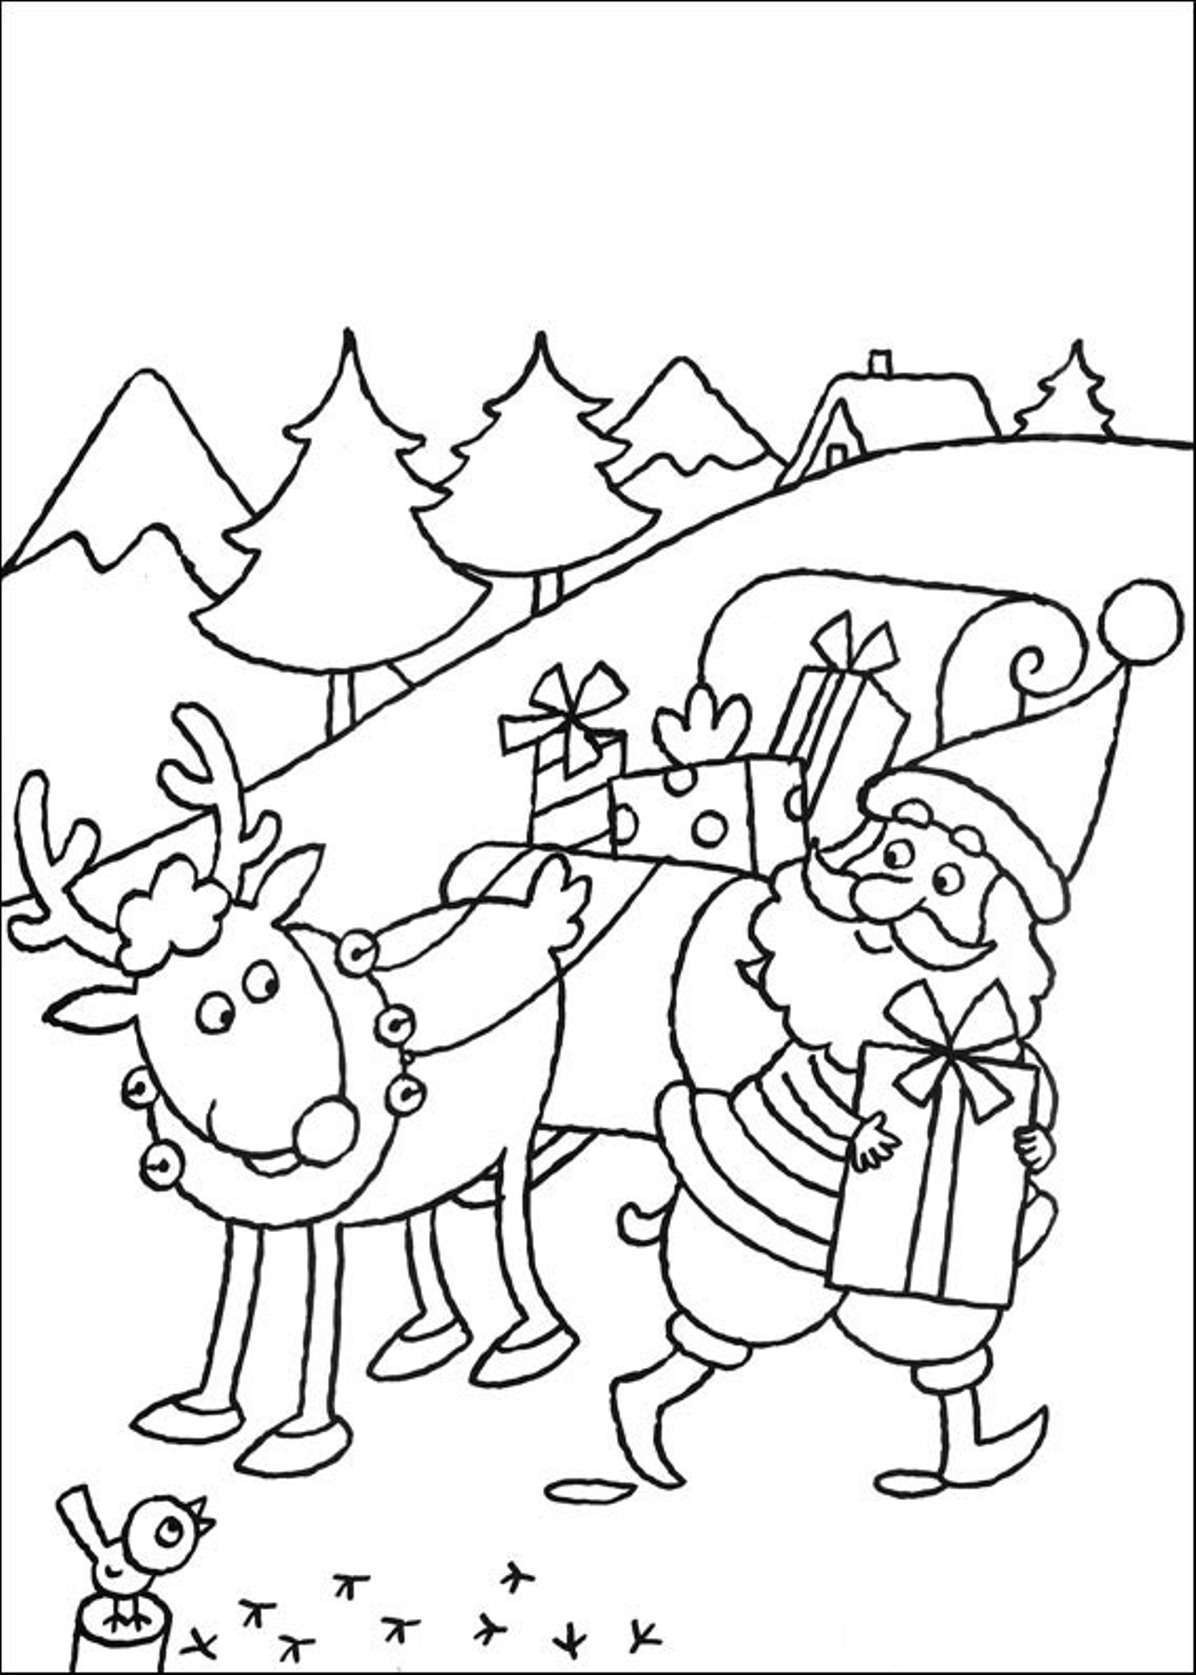 Christmas Reindeer Coloring Pages With Santa And Free For Kids